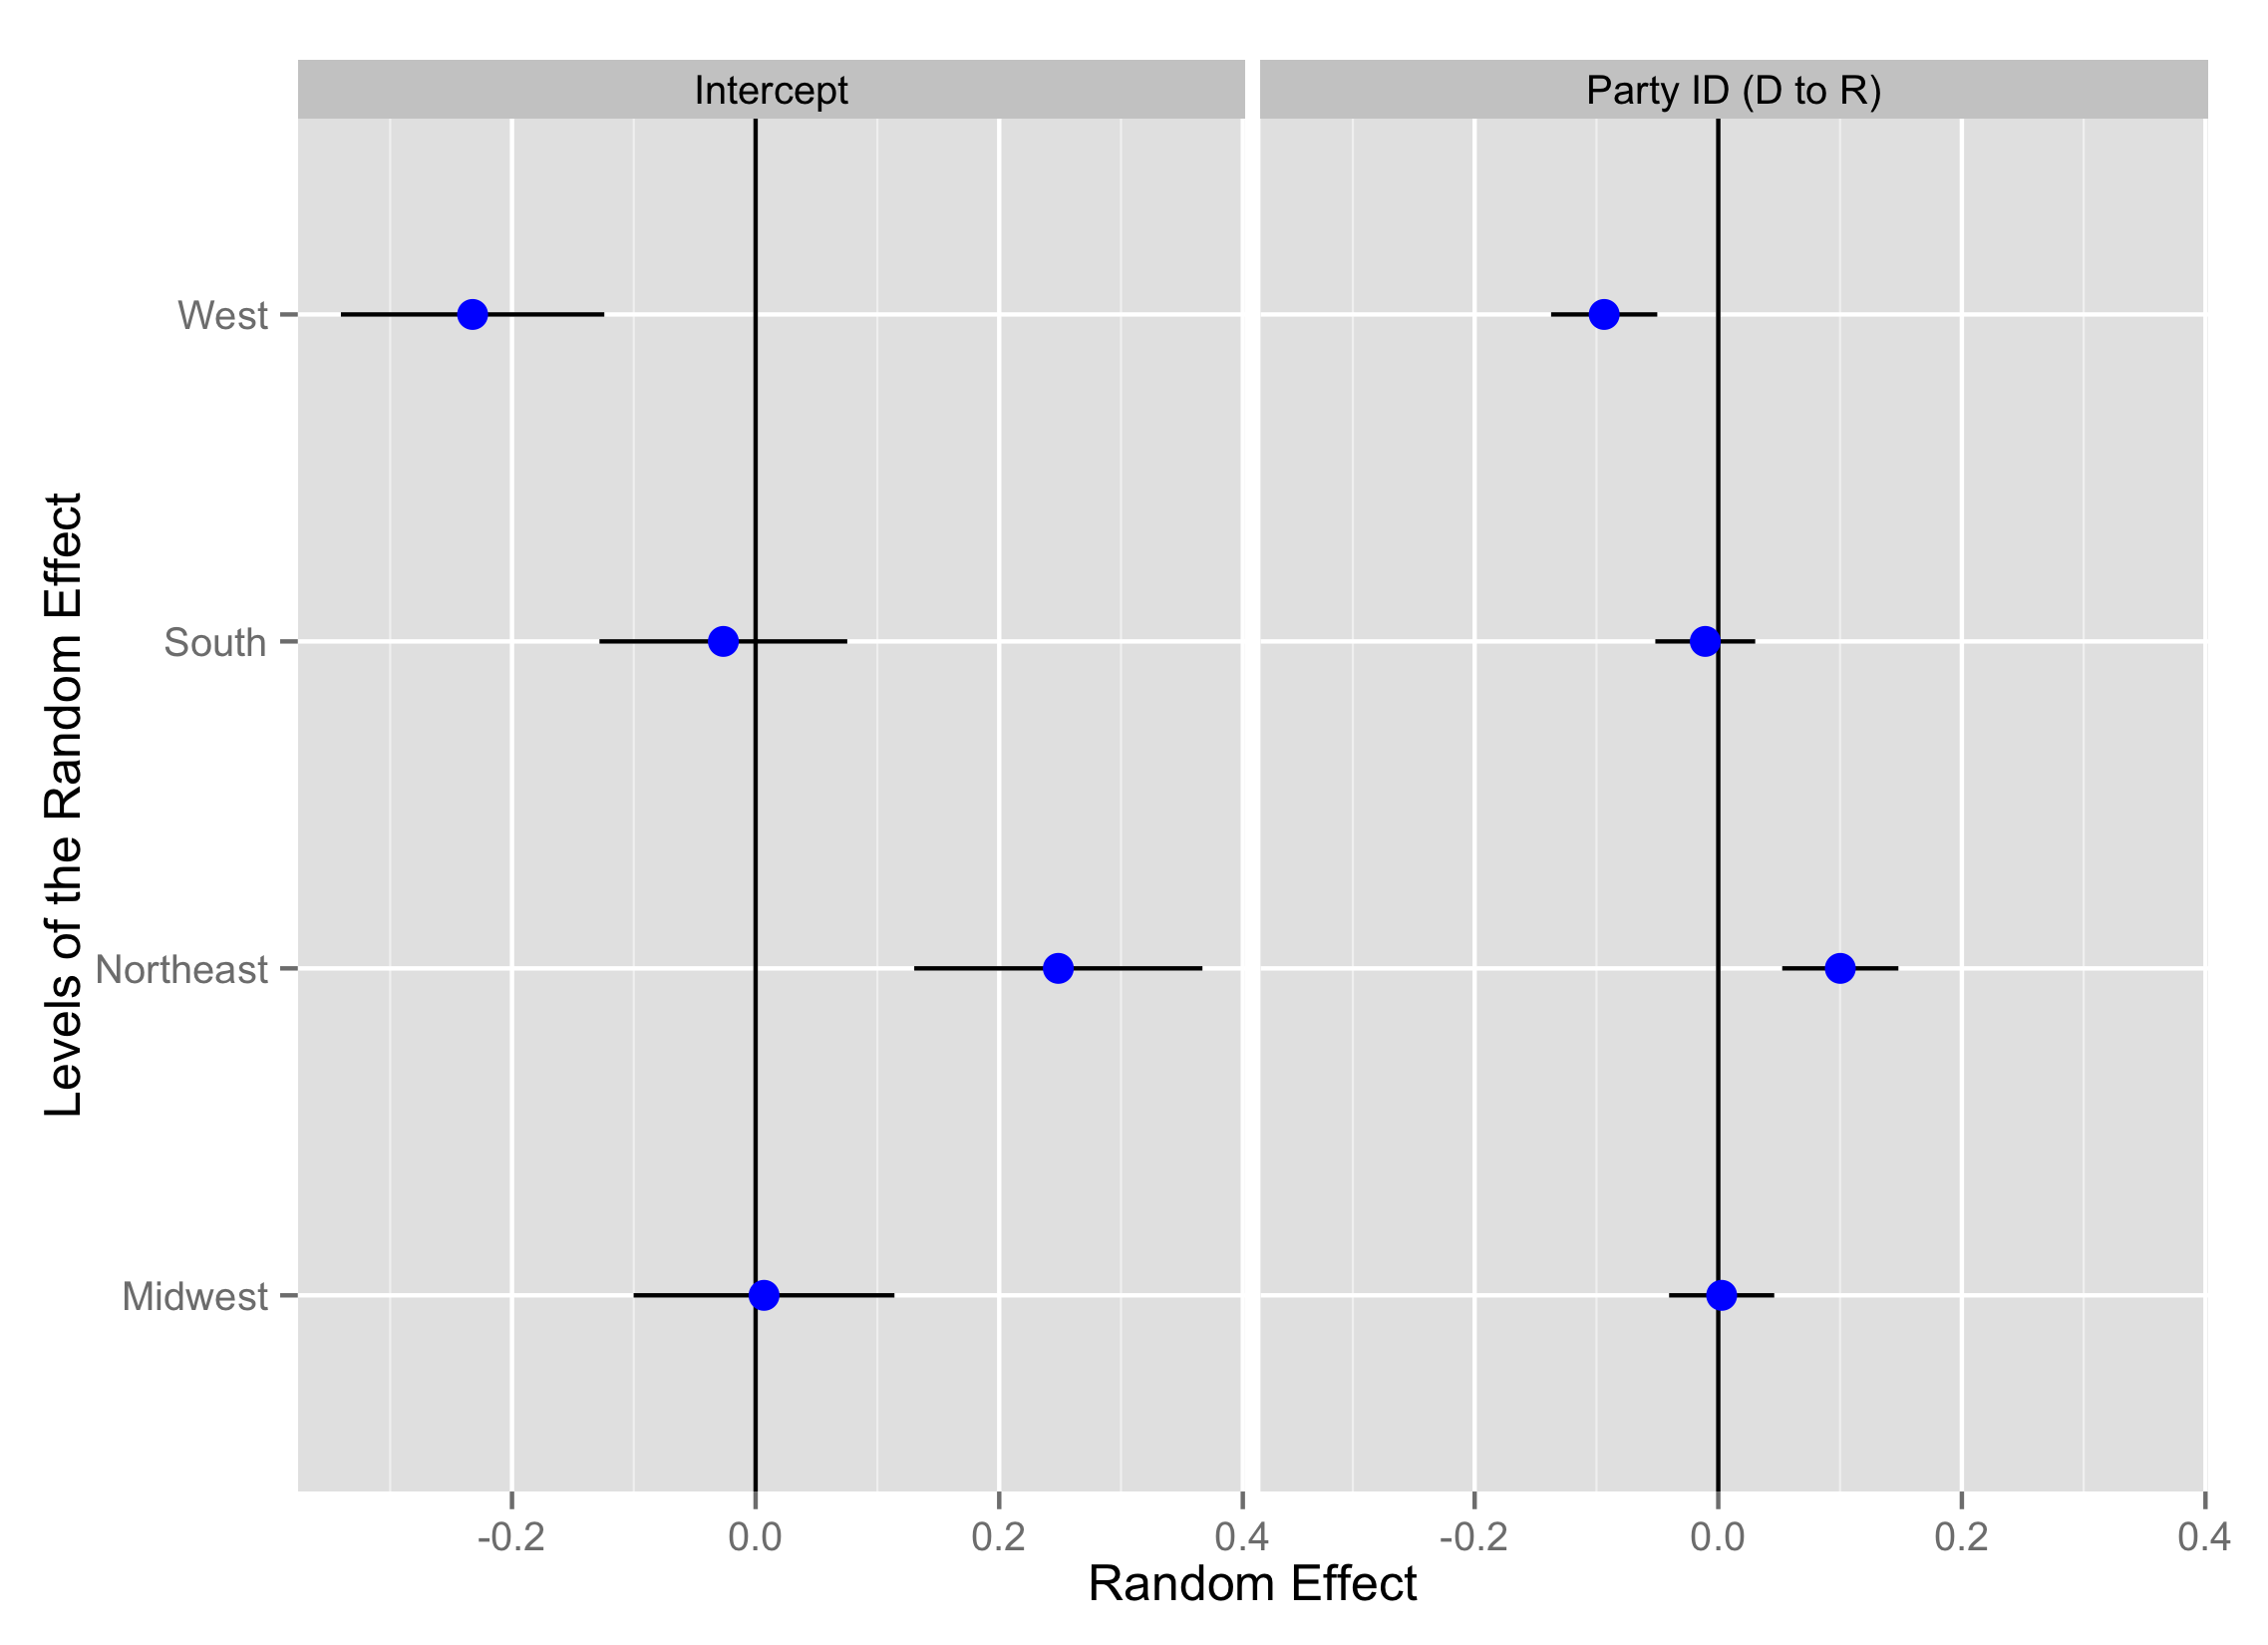 A caterpillar plot of the random effects in Model 1 (support for police permits) with random intercept for region and random slope for party ID (1994-2014).